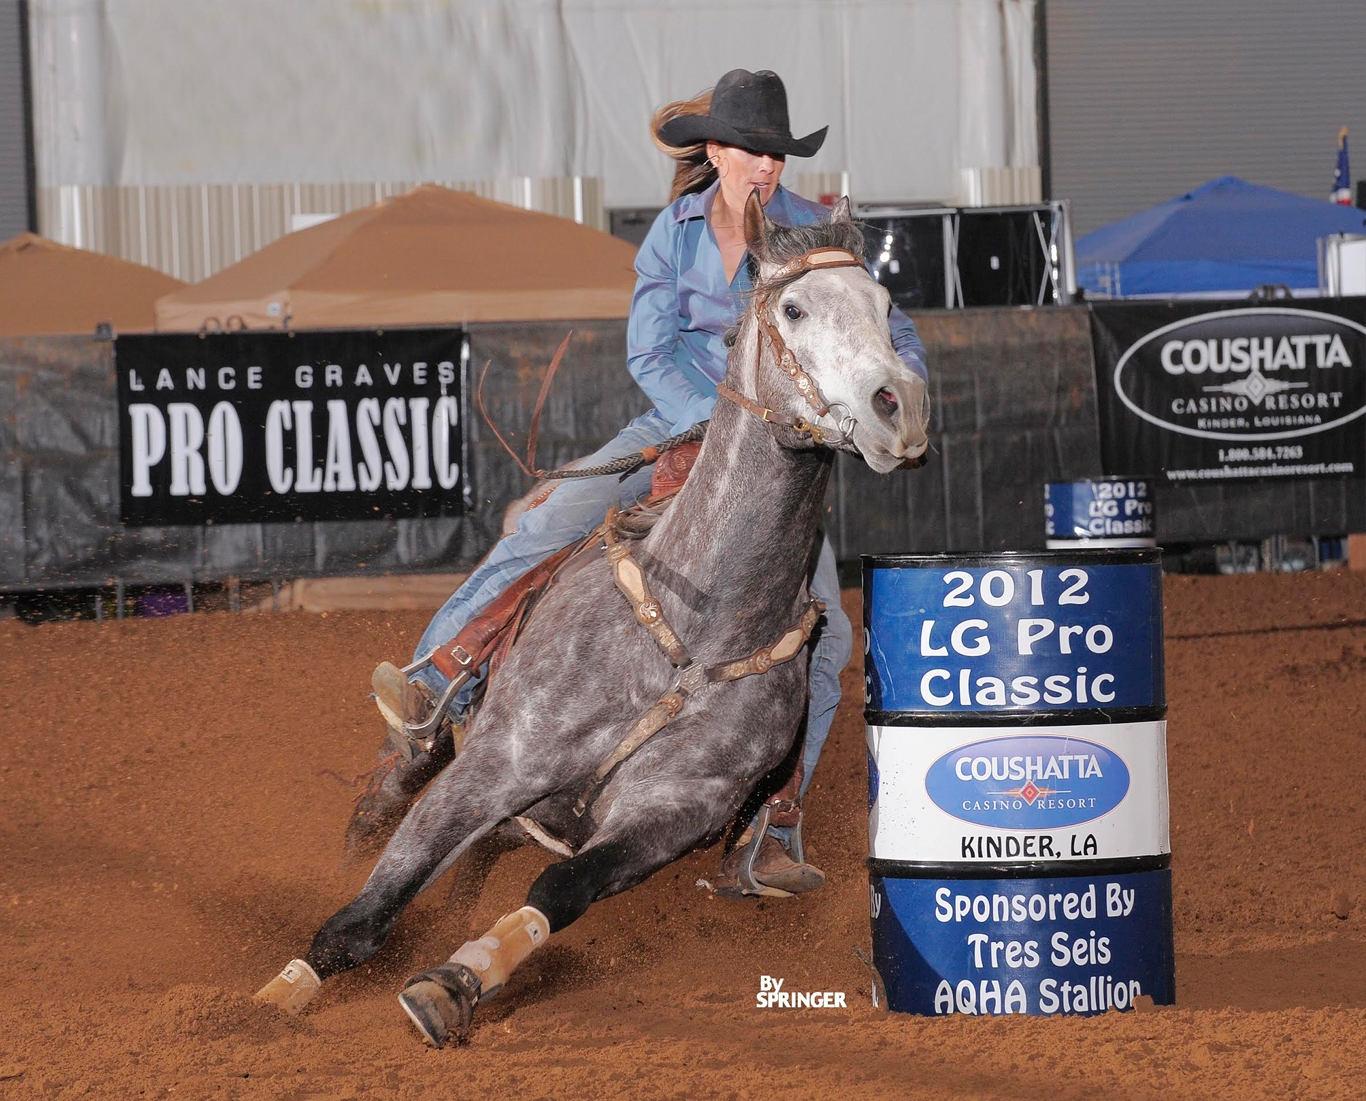 2012 - 2nd Highest Money Winning Futurity Horse in the NationOld PacWest Slot Race ChampionBBR Finals Slot Futurity ChampionEcurie 5-55 Drummond Futurity ChampionLG Pro Classic Slot Race Reserve Champion